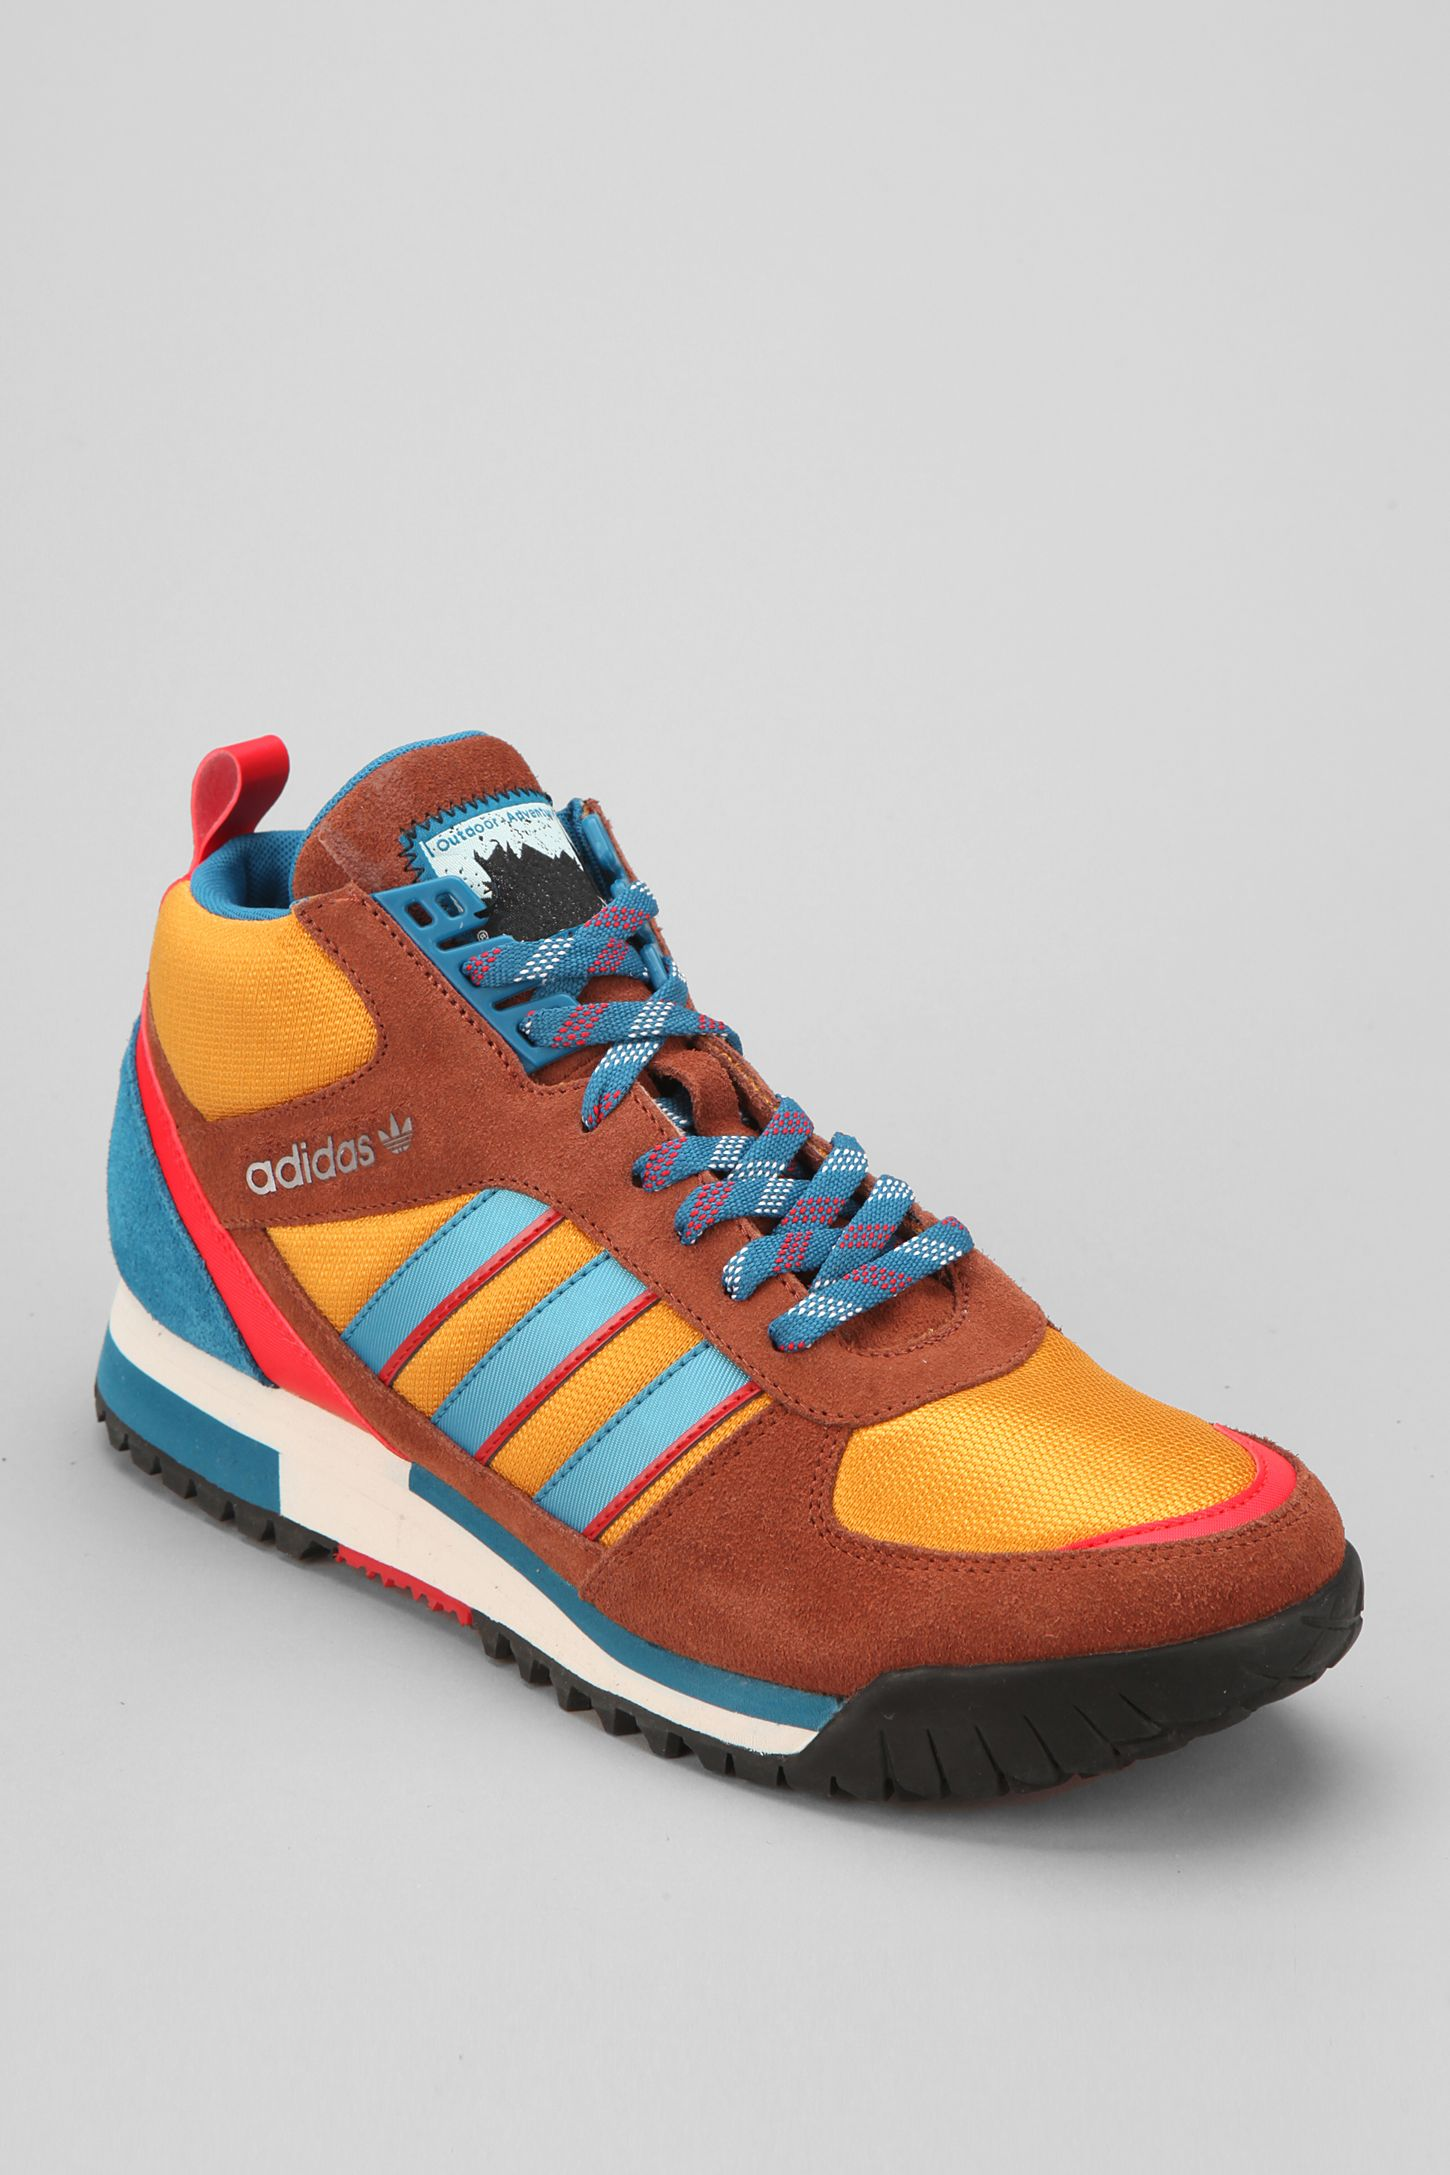 23585171a0107 adidas ZX TR Mid-Top Trail Sneaker